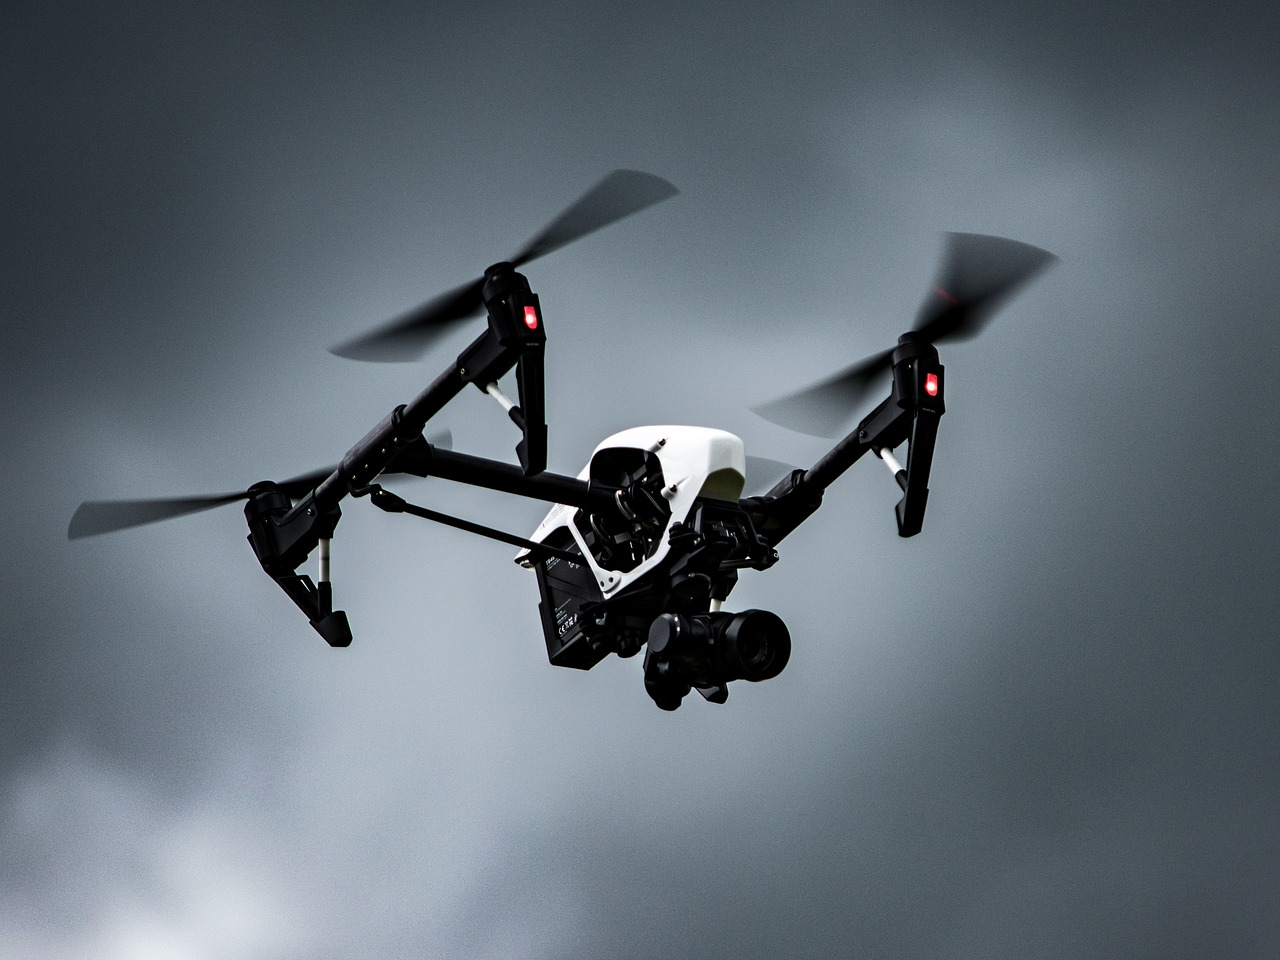 A Drone Hijacking Device Will Take Over Illegal Drones Within Its Range